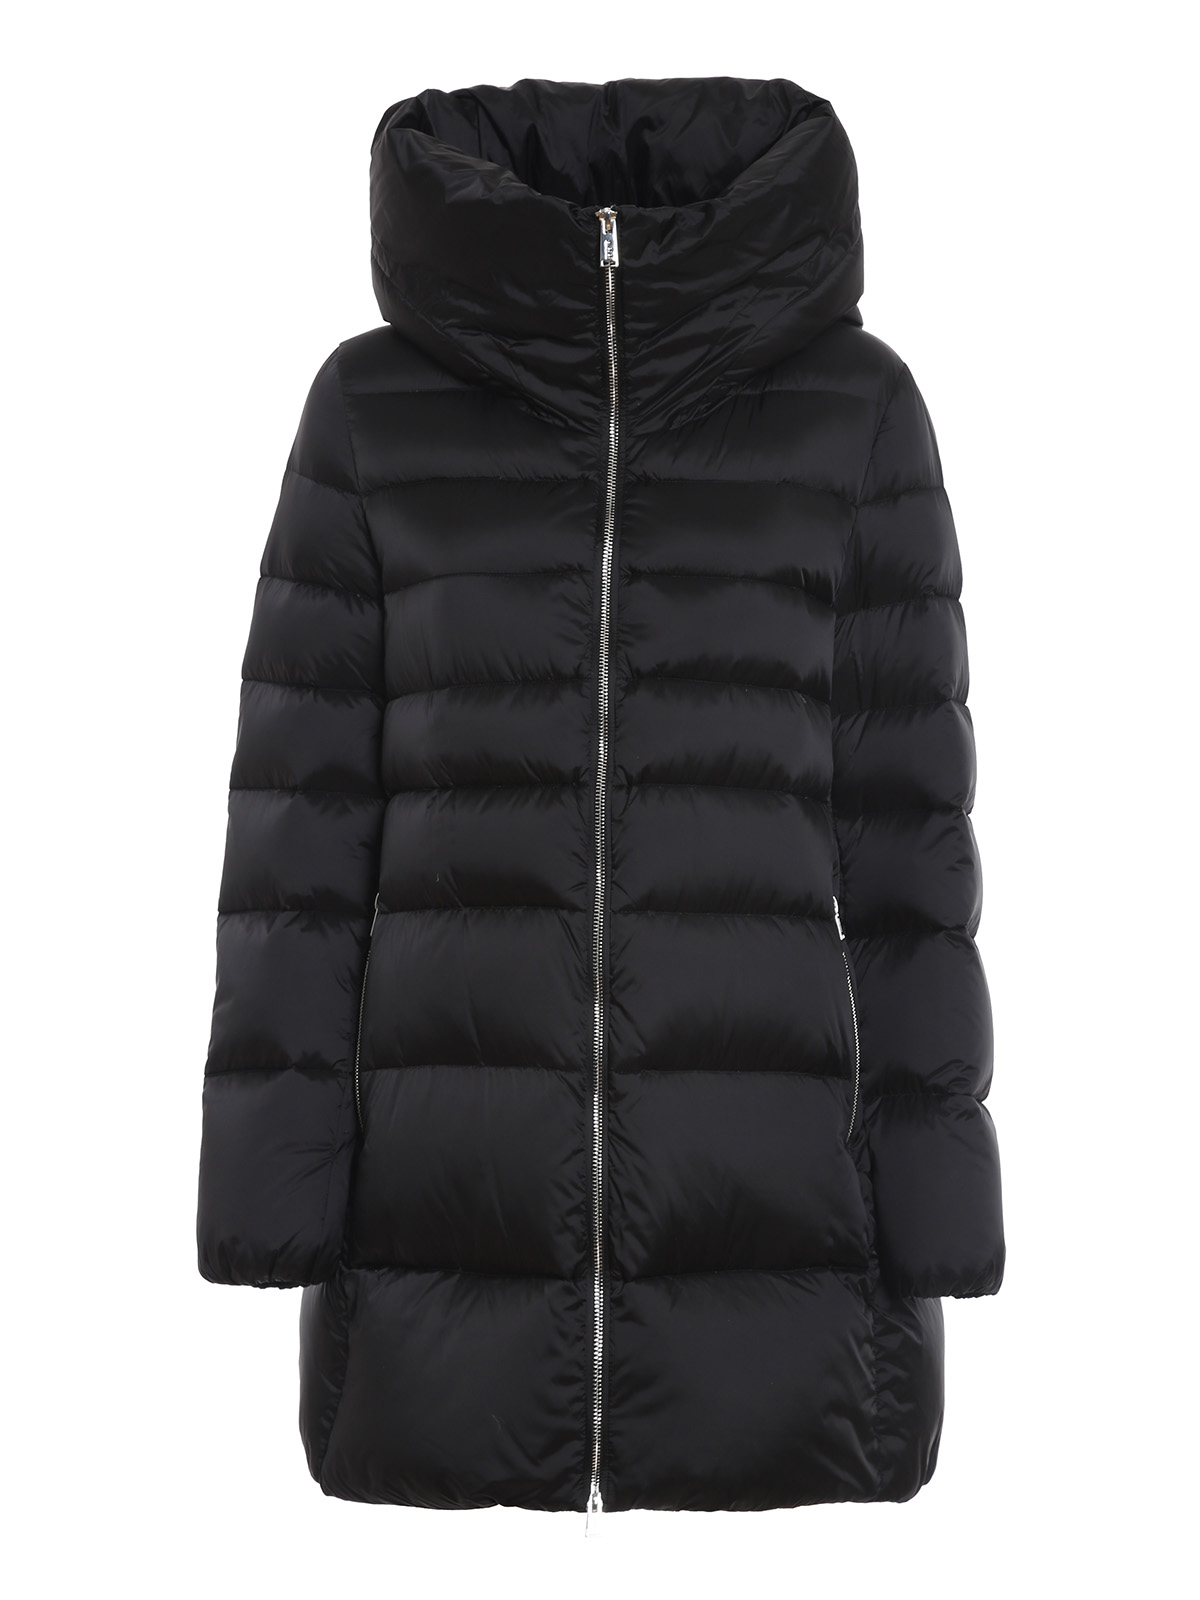 Add BLACK QUILTED LONGUETTE PUFFER JACKET